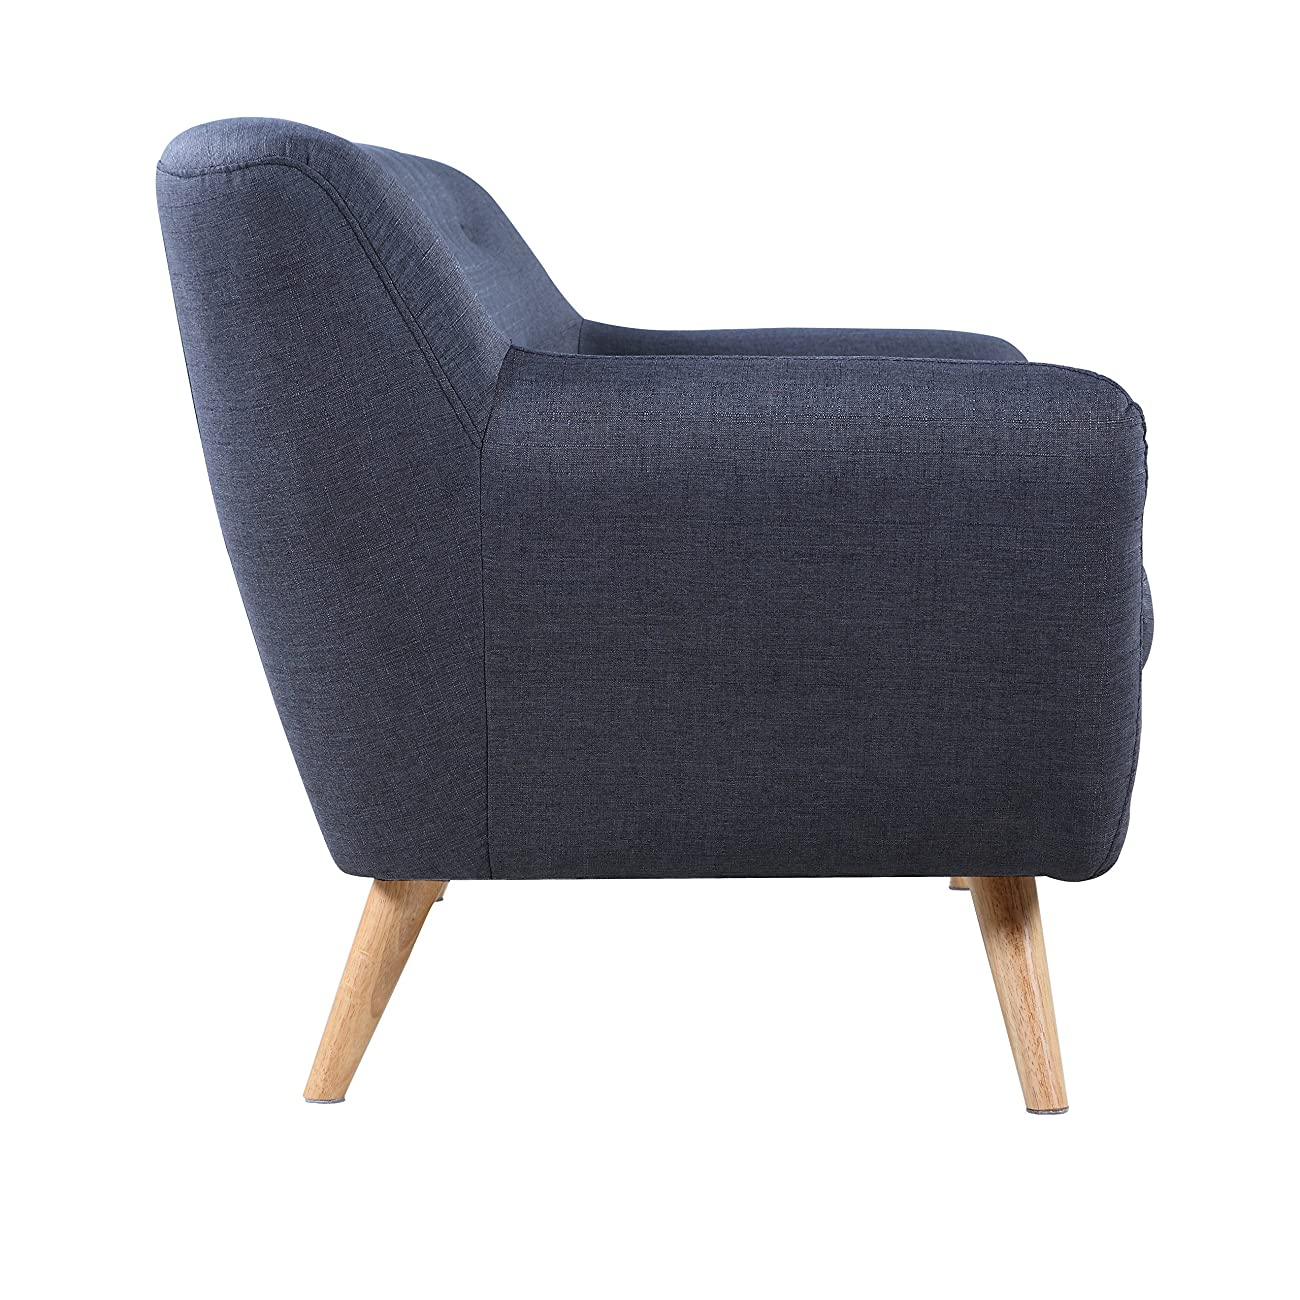 Mid-Century modern tufted linen fabric loveseat in various colors - polo blue, blue, light grey, yellow and red (Light Grey with Multi Color Buttons) 2